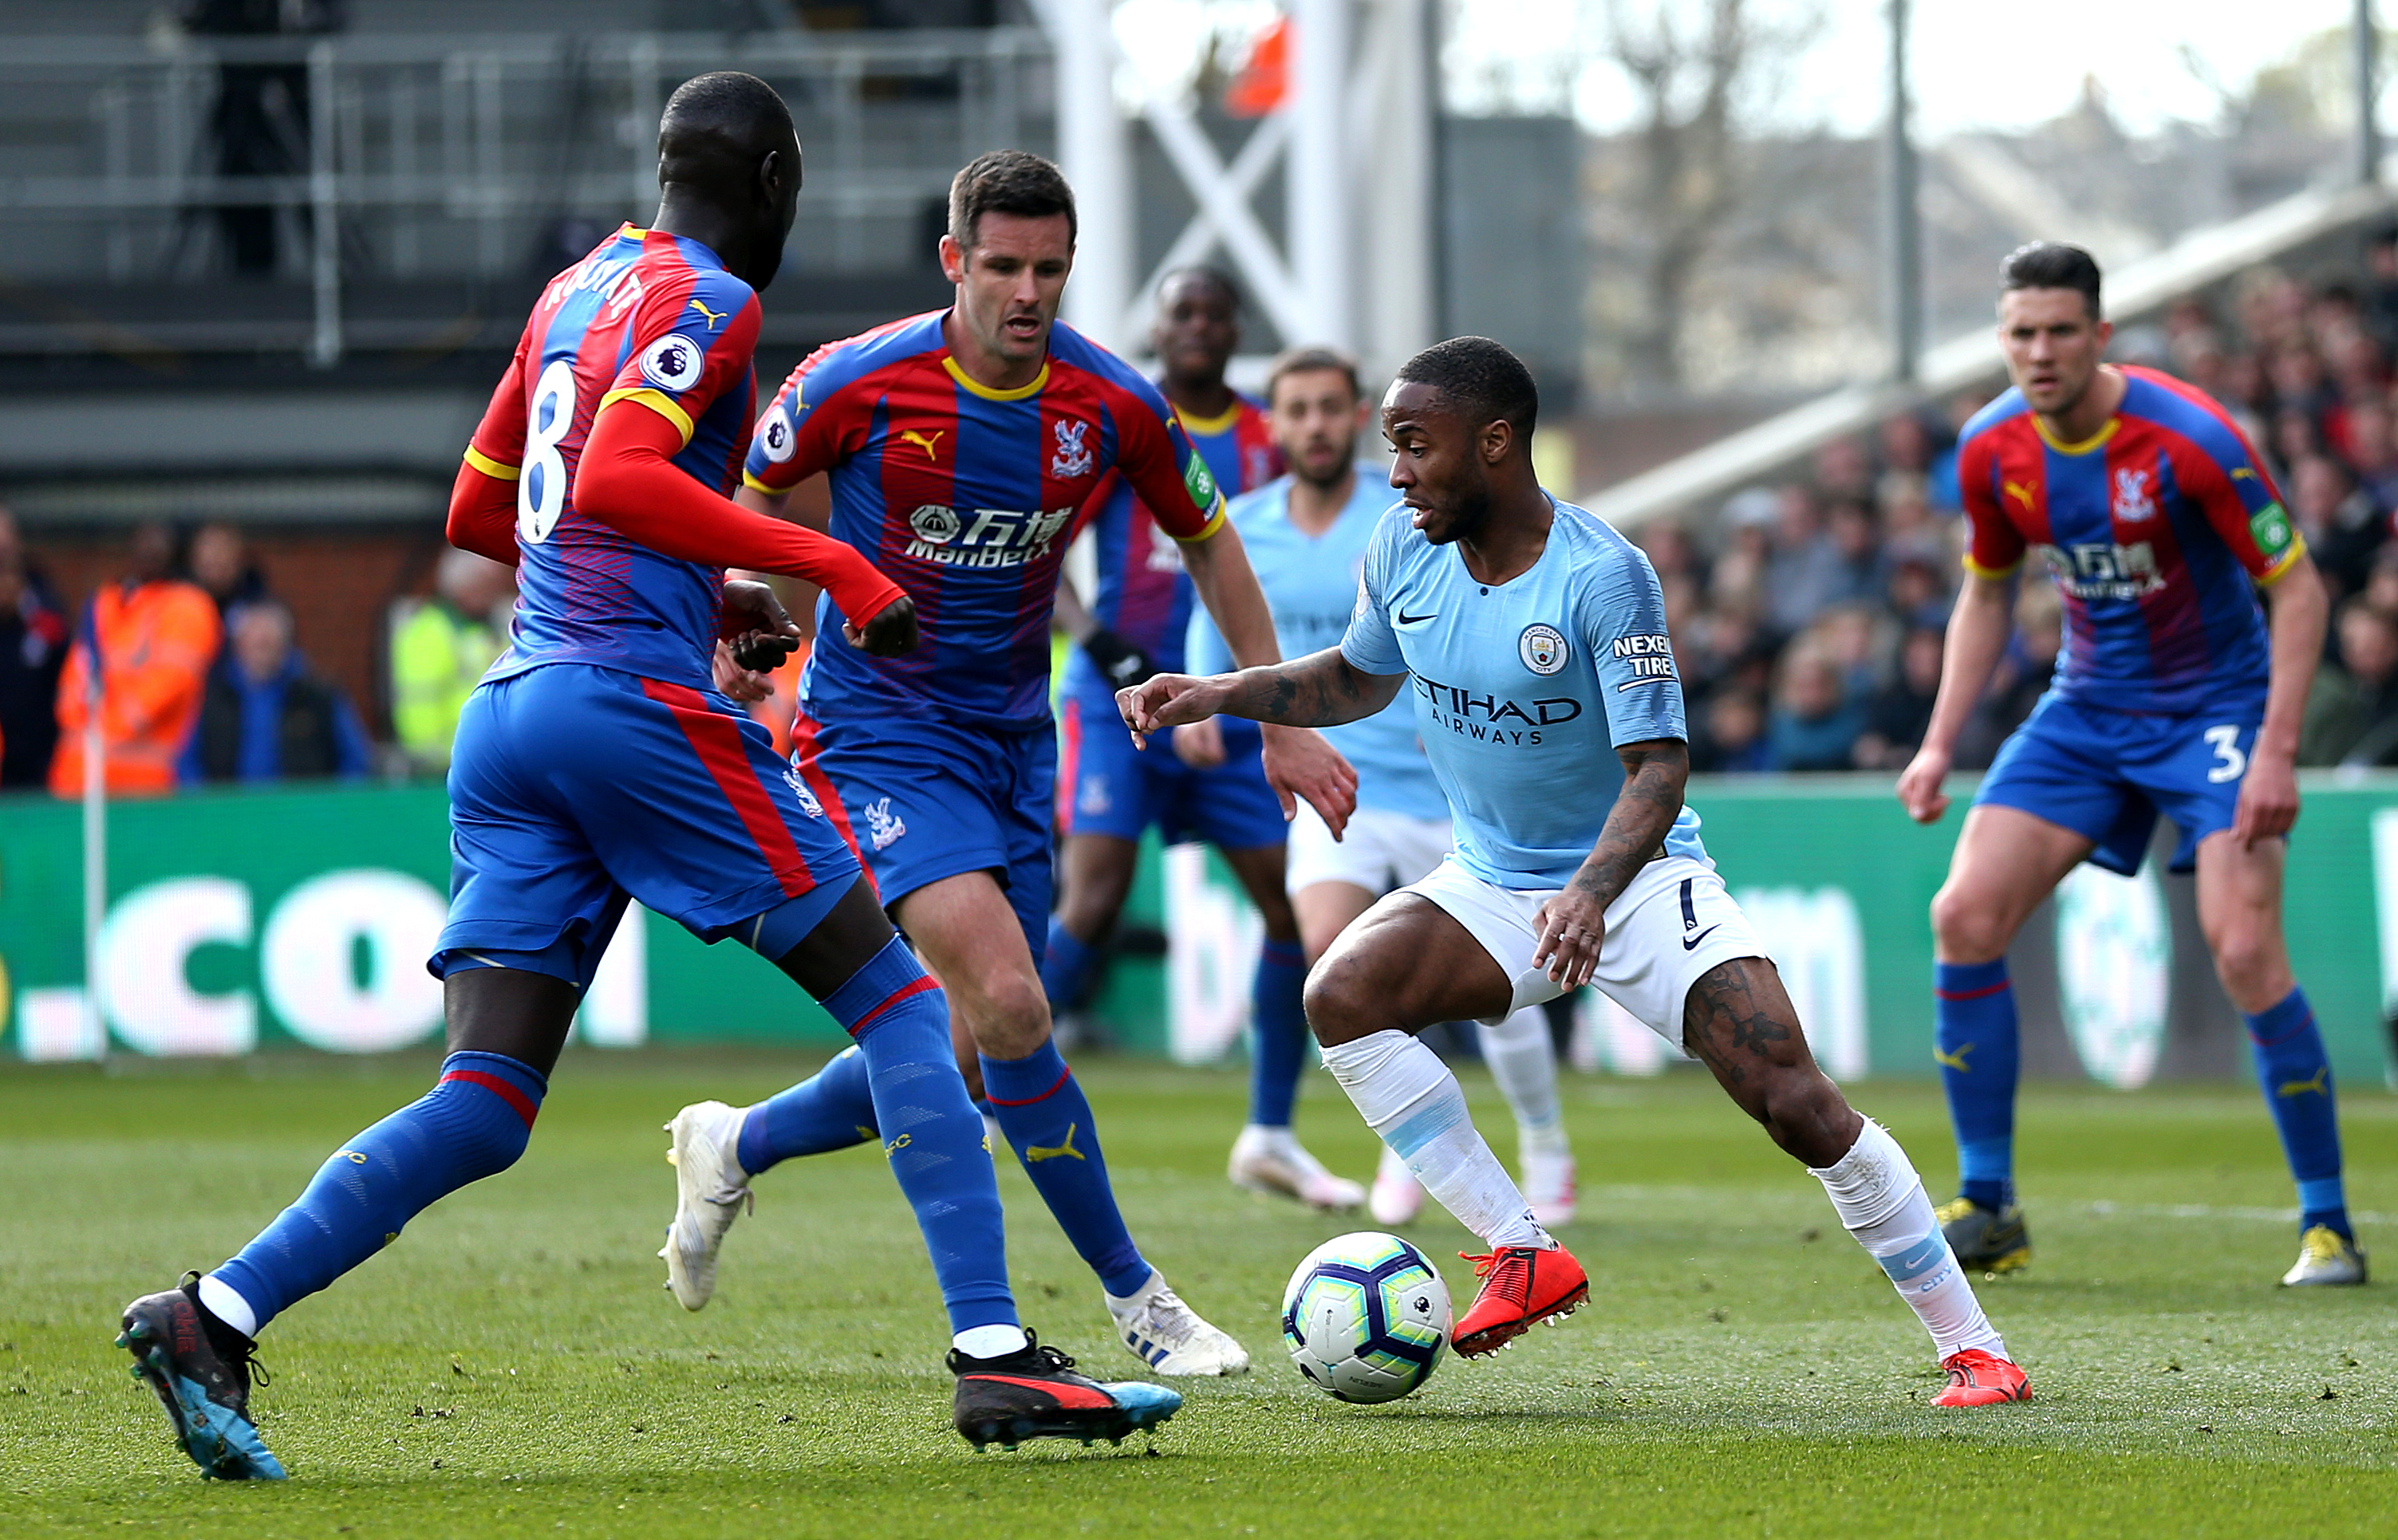 Raheem Sterling scored twice for Manchester City at Palace